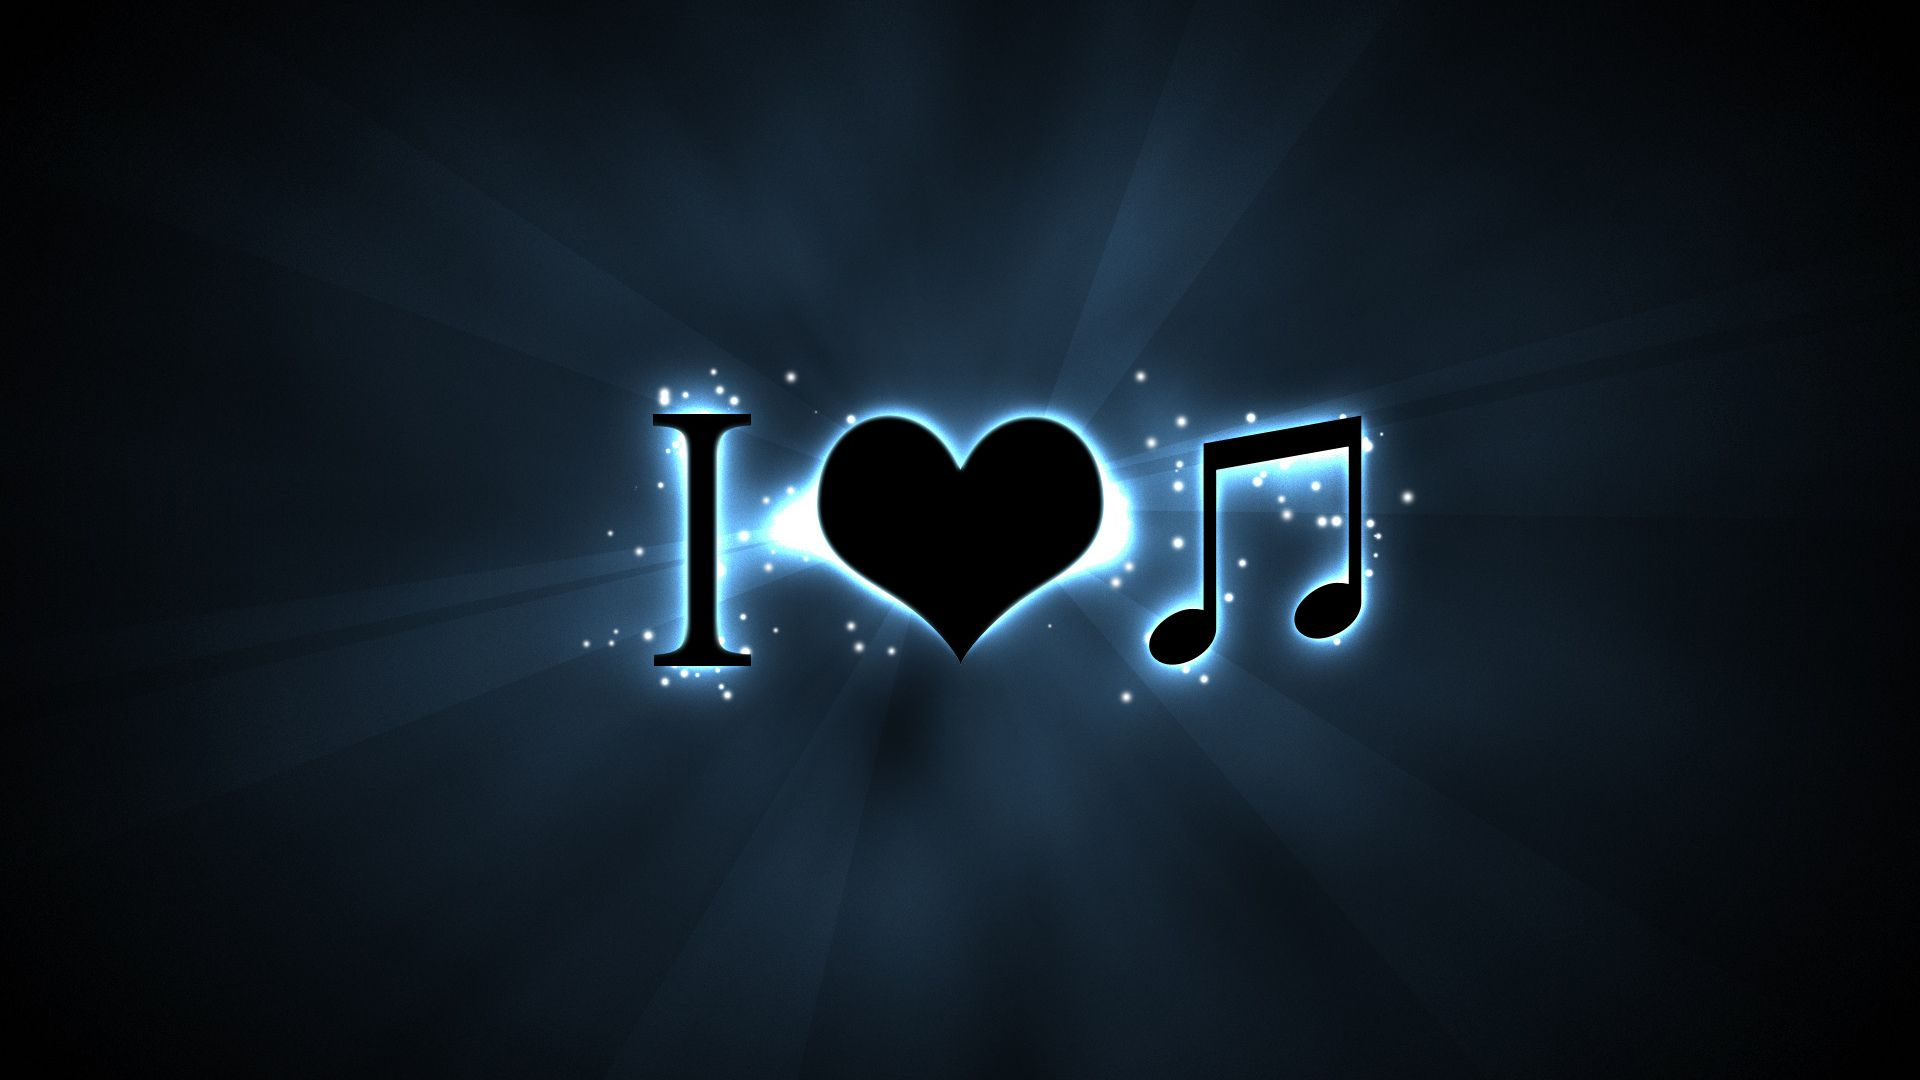 Download HD Wallpapers 1080p Music Gallery